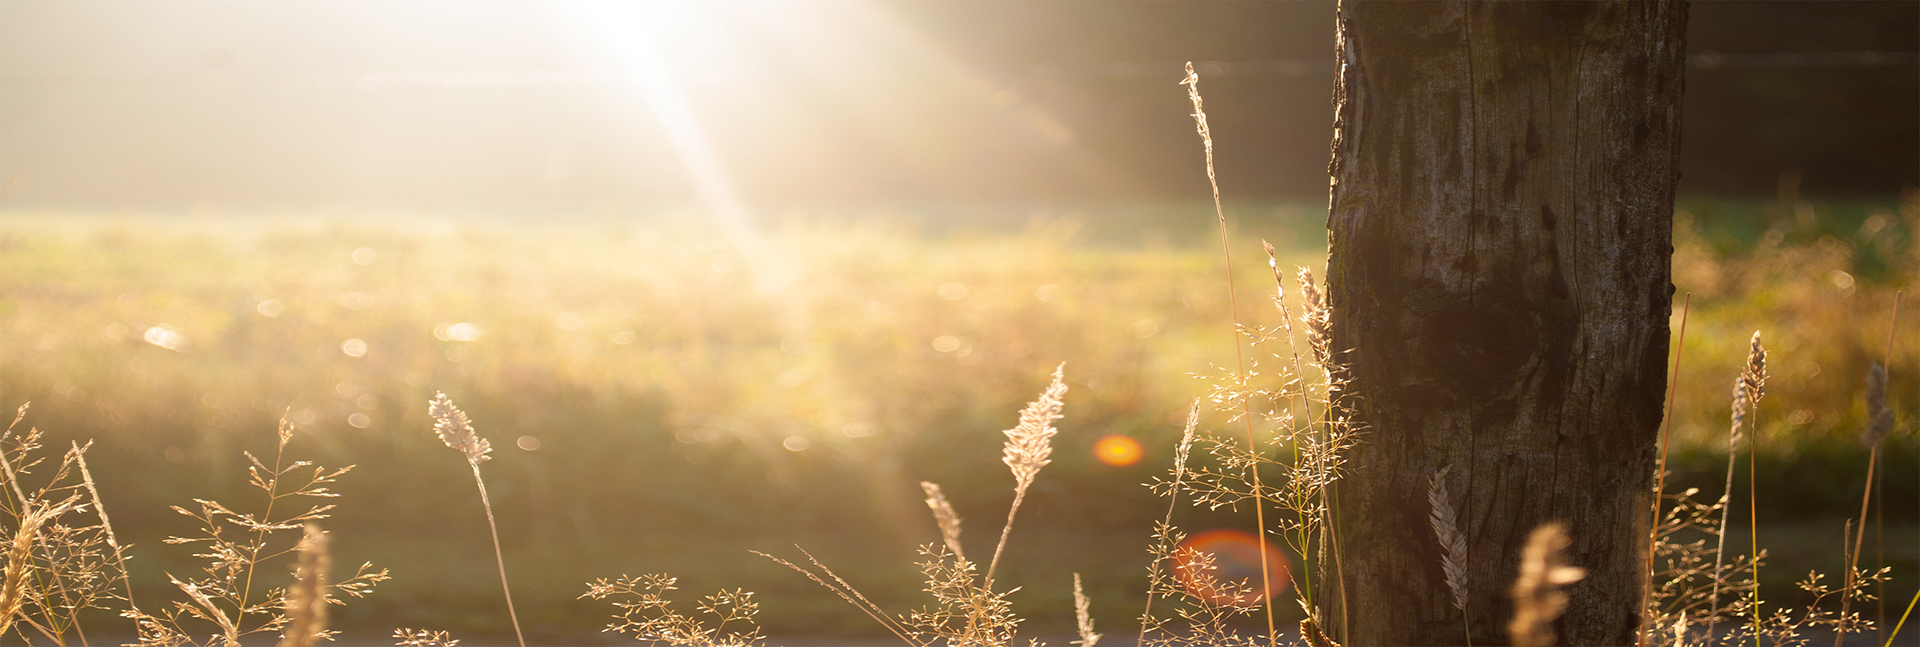 1_field-summer-sun-meadow_1920x647px